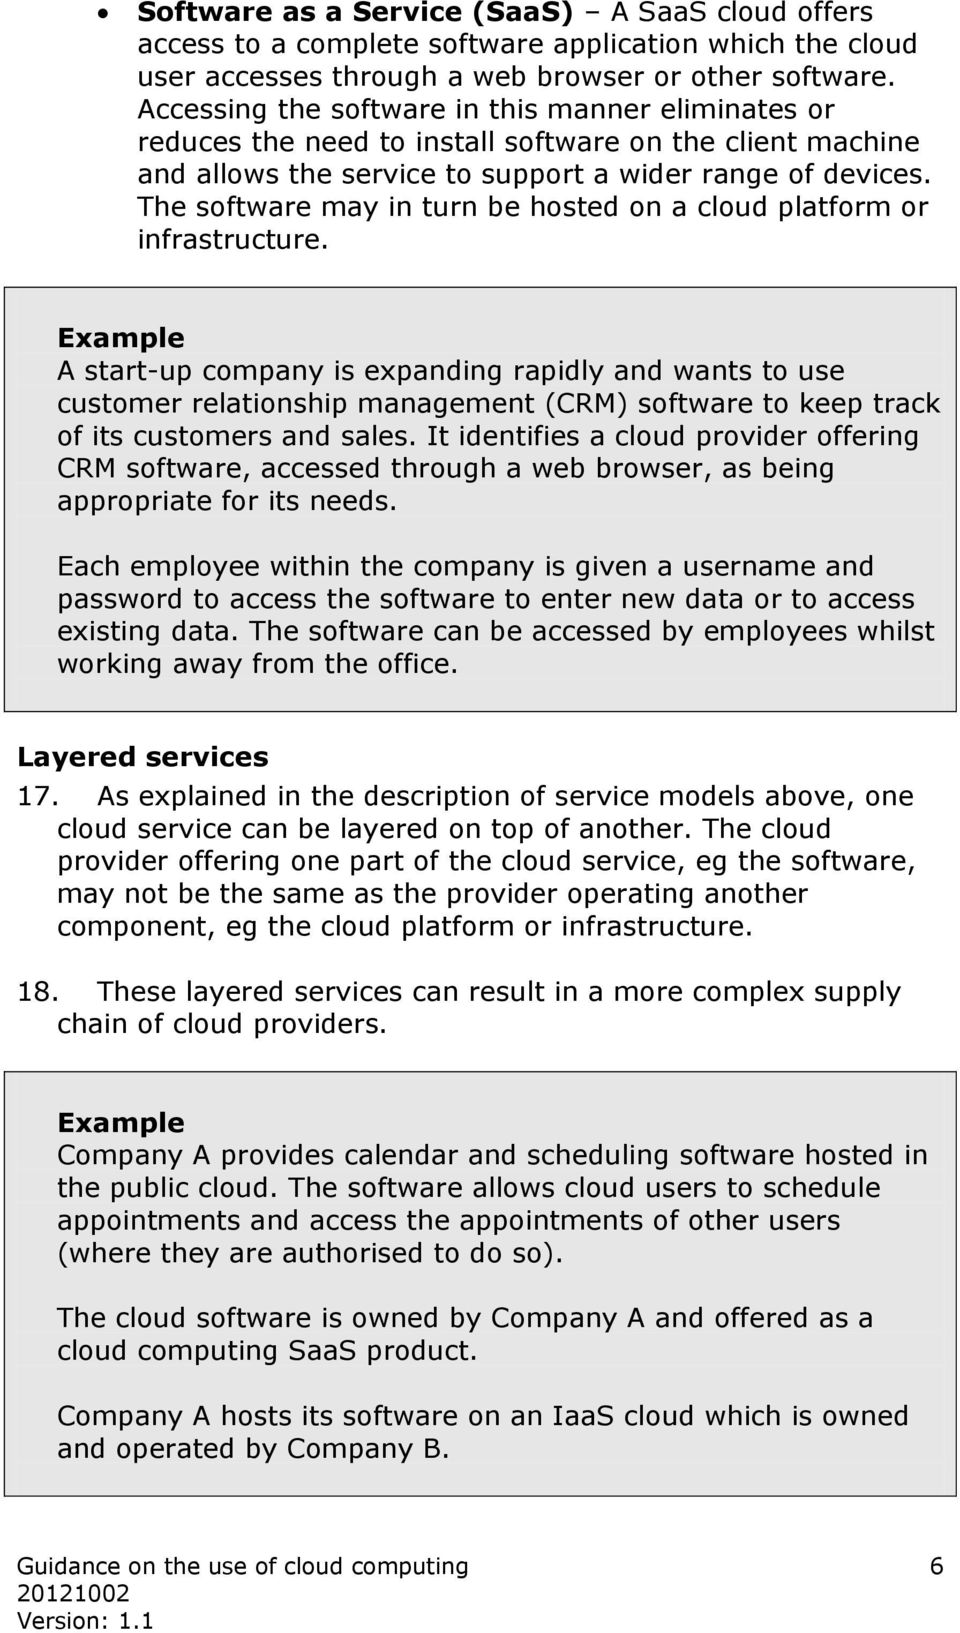 The software may in turn be hosted on a cloud platform or infrastructure.